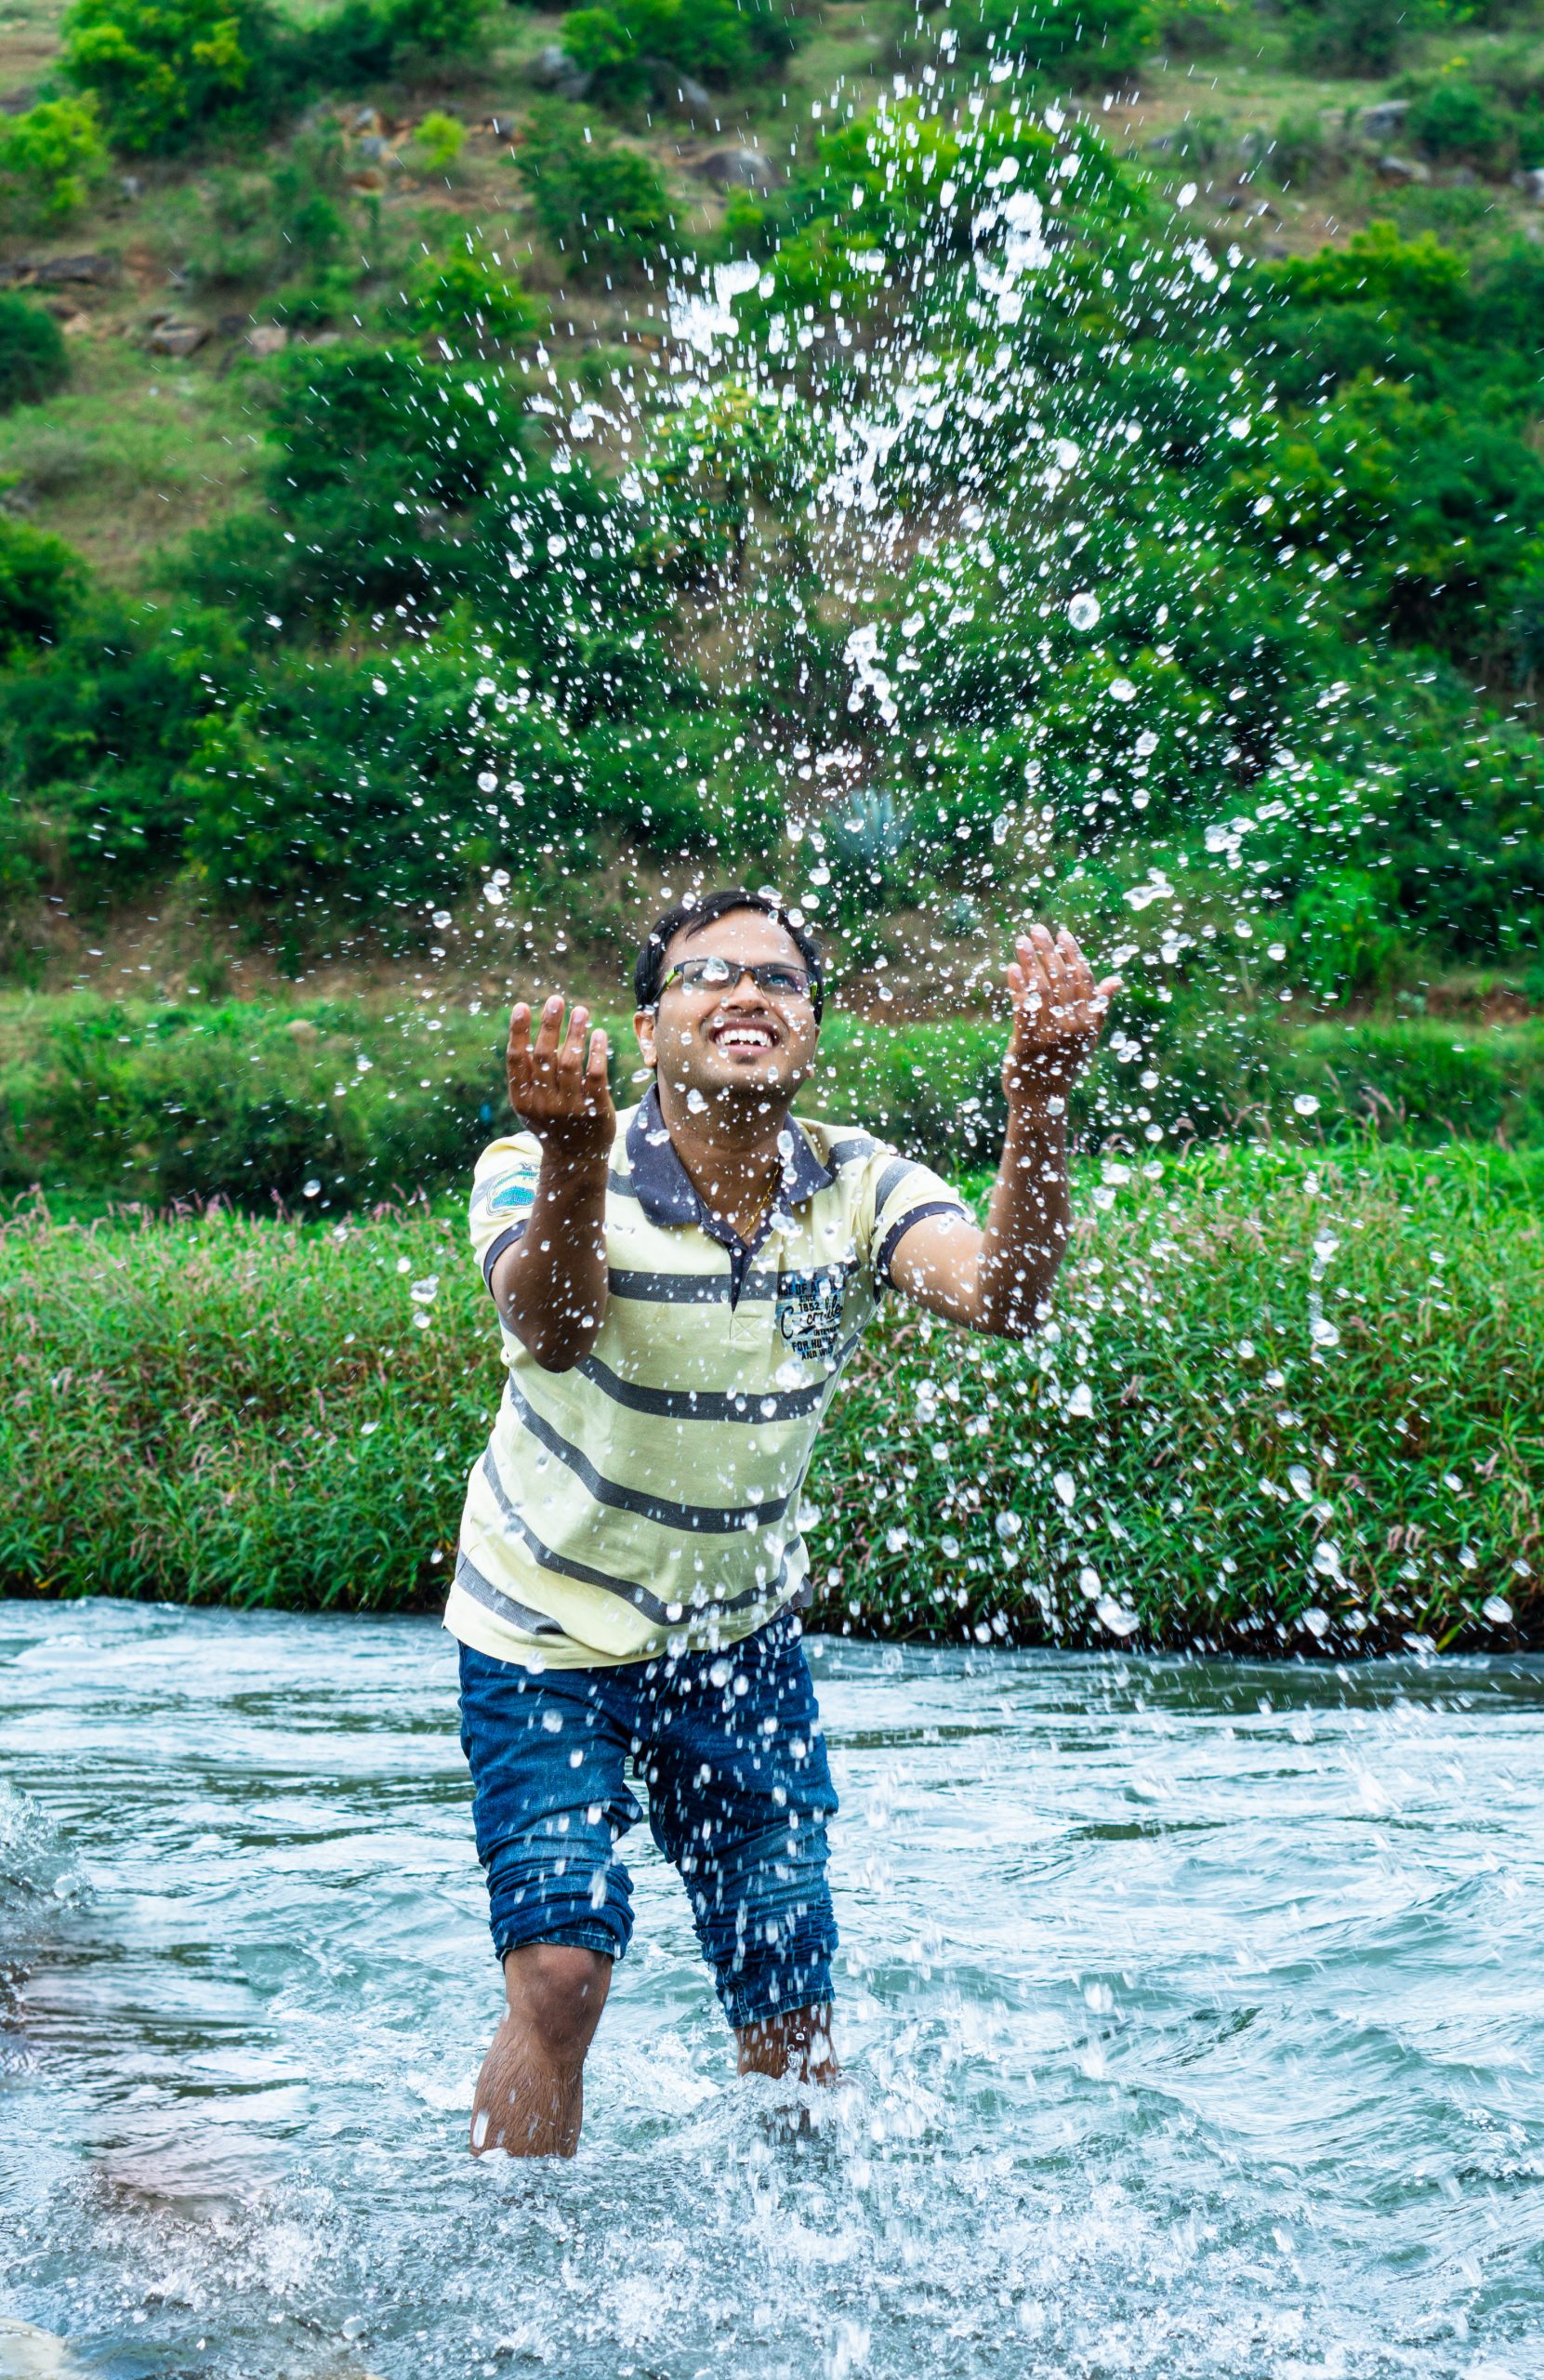 A man playing with water.